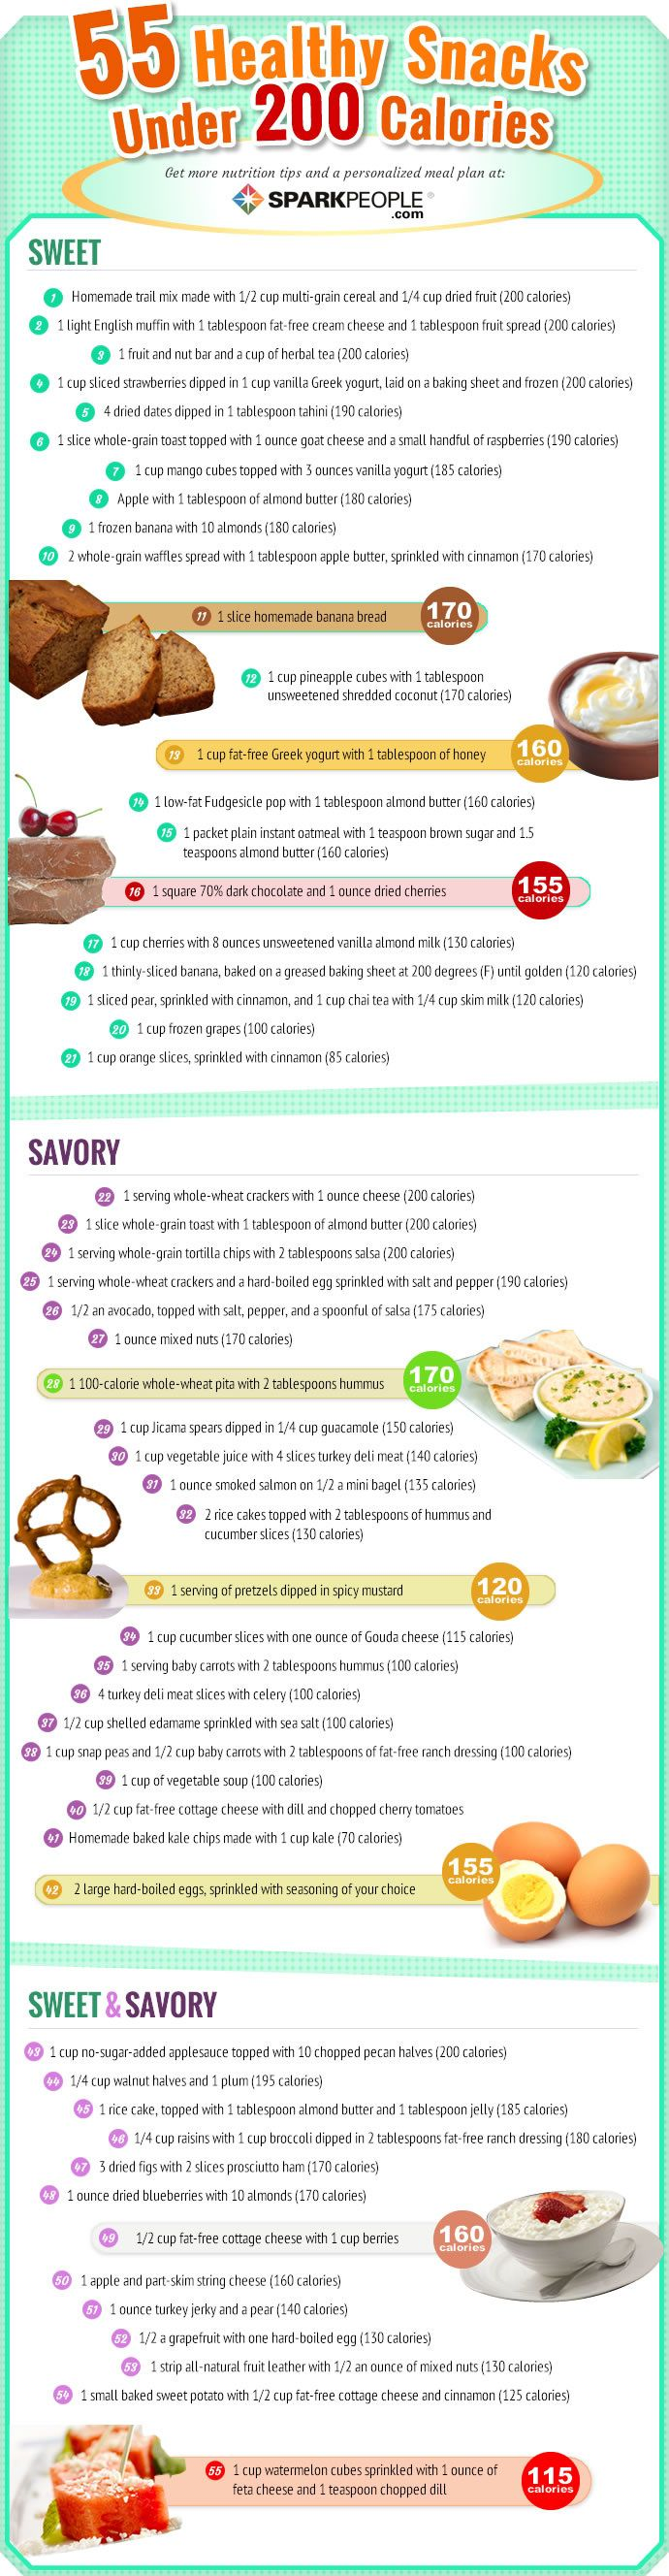 Healthy Snacks Under 200 CaloriesSocialCafe Magazine | SocialCafe Magazine